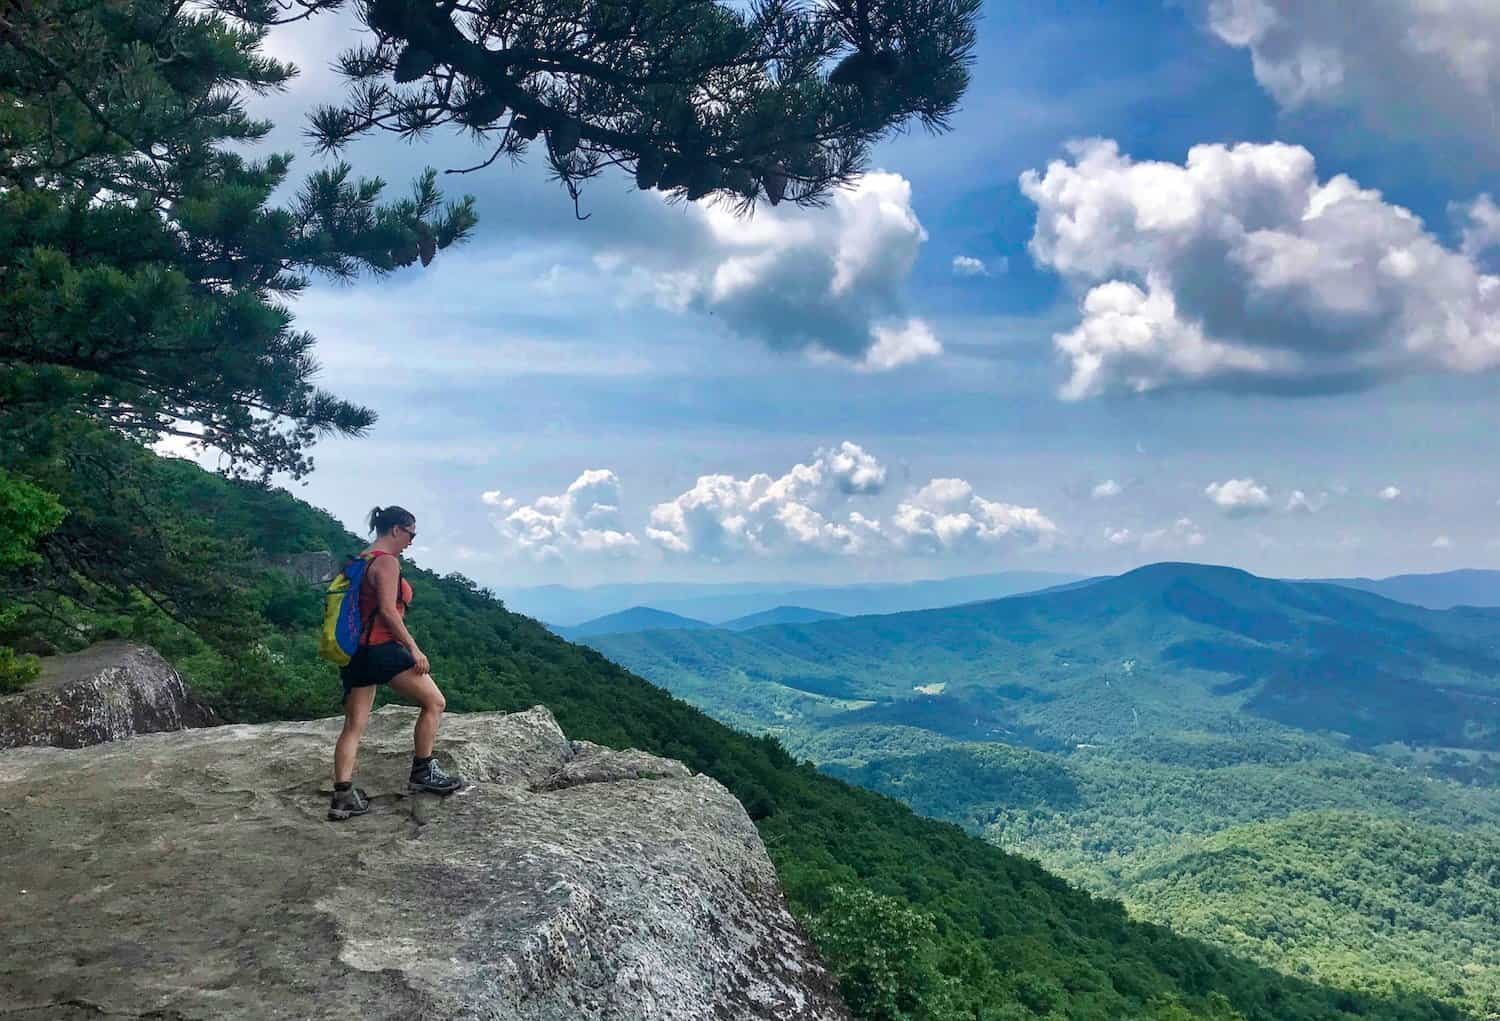 Virginia's Blue Ridge - Hiking at the Tinker Cliffs